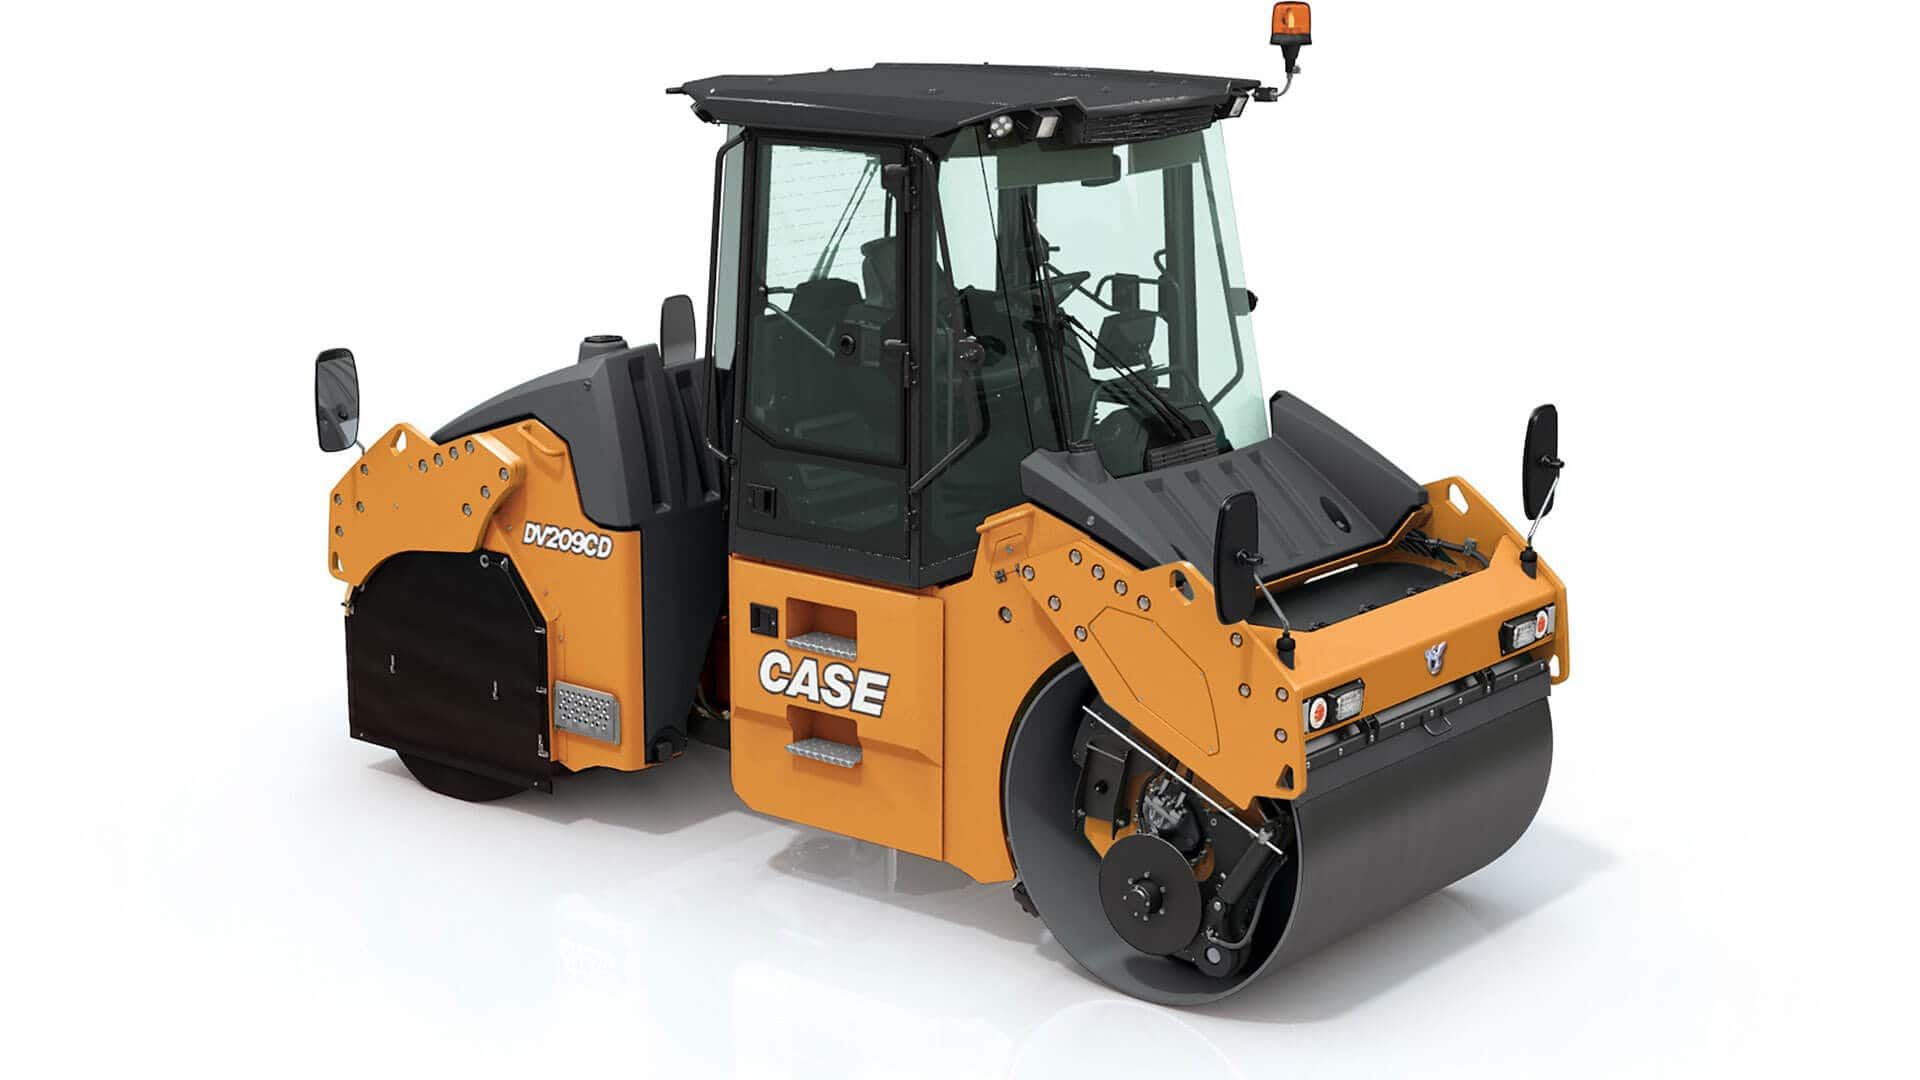 https://assets.cnhindustrial.com/casece/nafta/assets/Products/Compaction-Equipment/Double-Drum-Rollers/DV209CD_ARX_110K_T4i_Heavy_Tandem_Roller__22.jpg?Width=800&Height=450